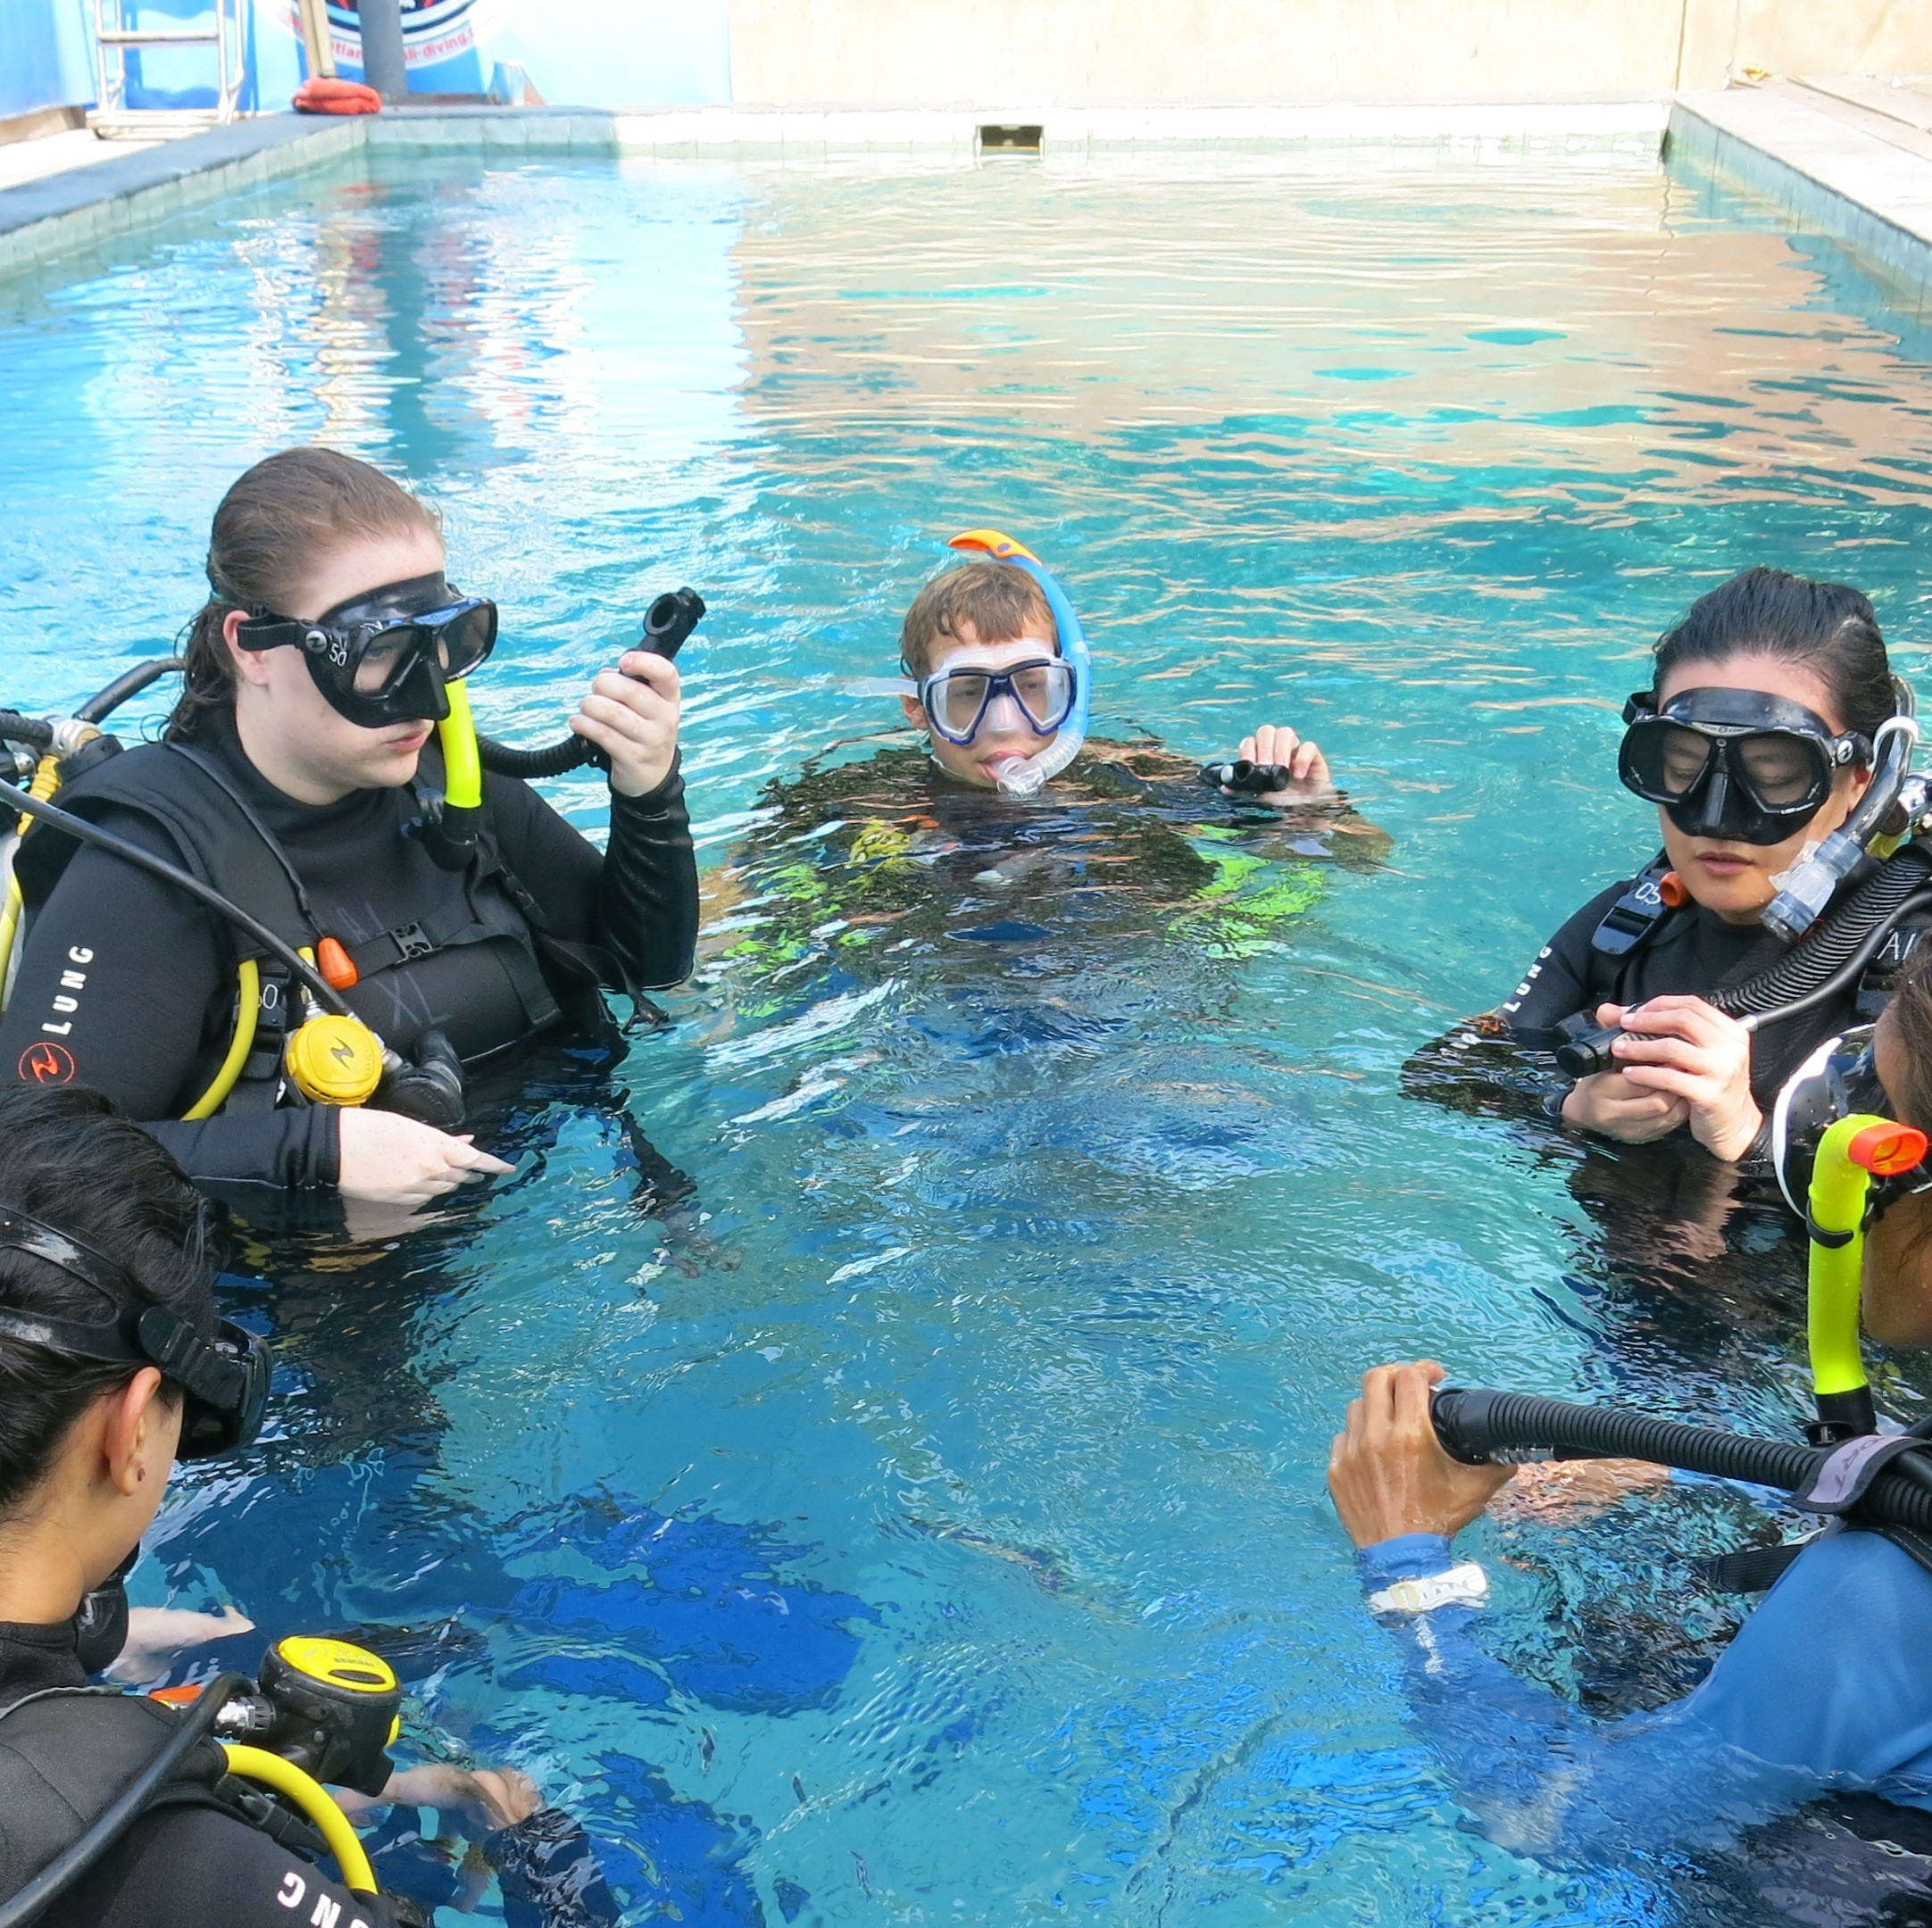 Dive training | Atlantis Bali Diving